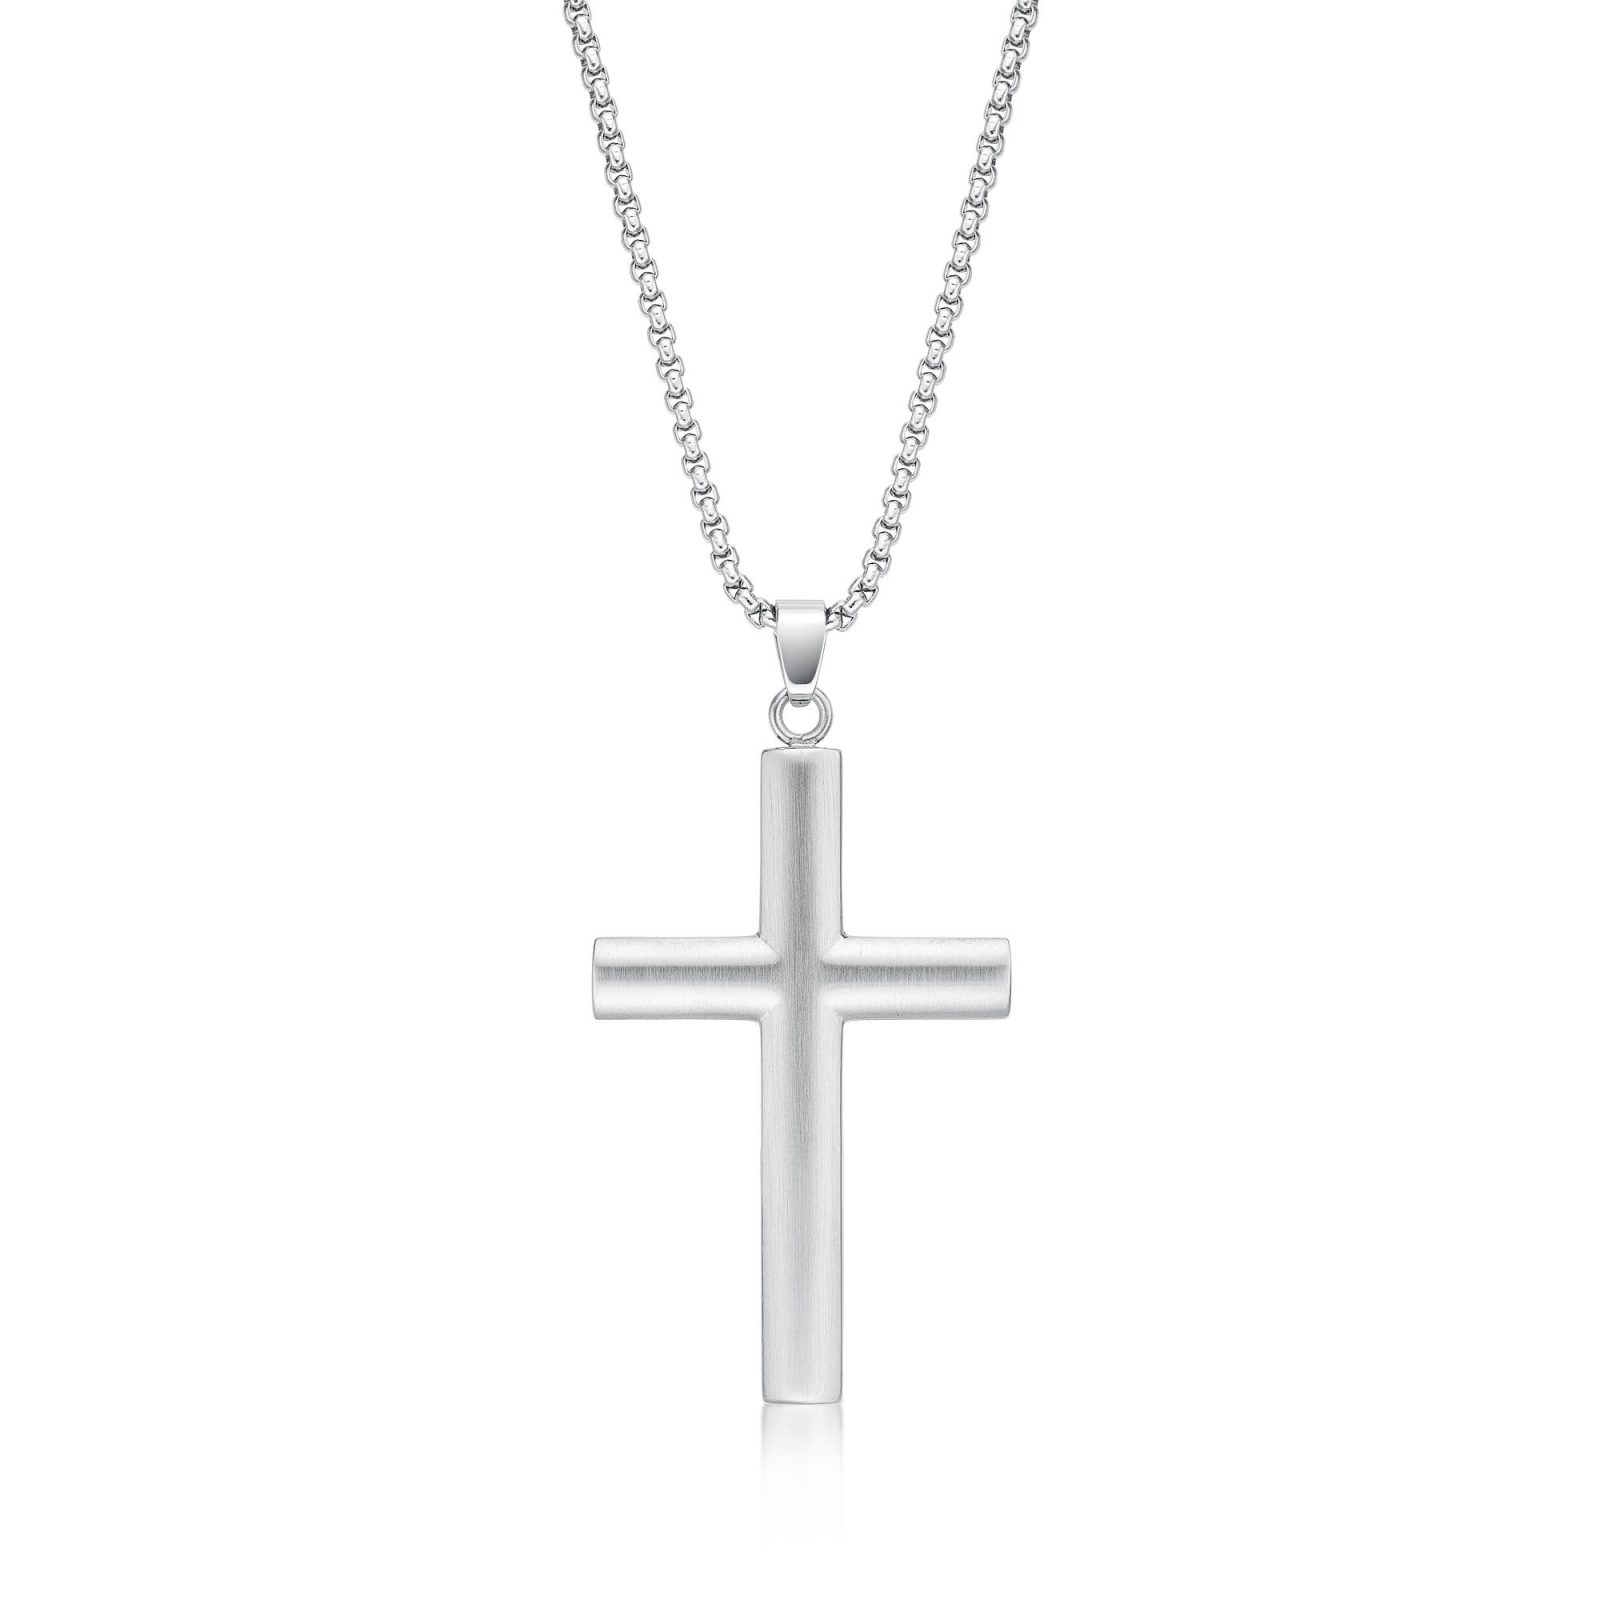 Men's Stainless Steel Minimalist Cross Pendant - 24 Inch Box Chain